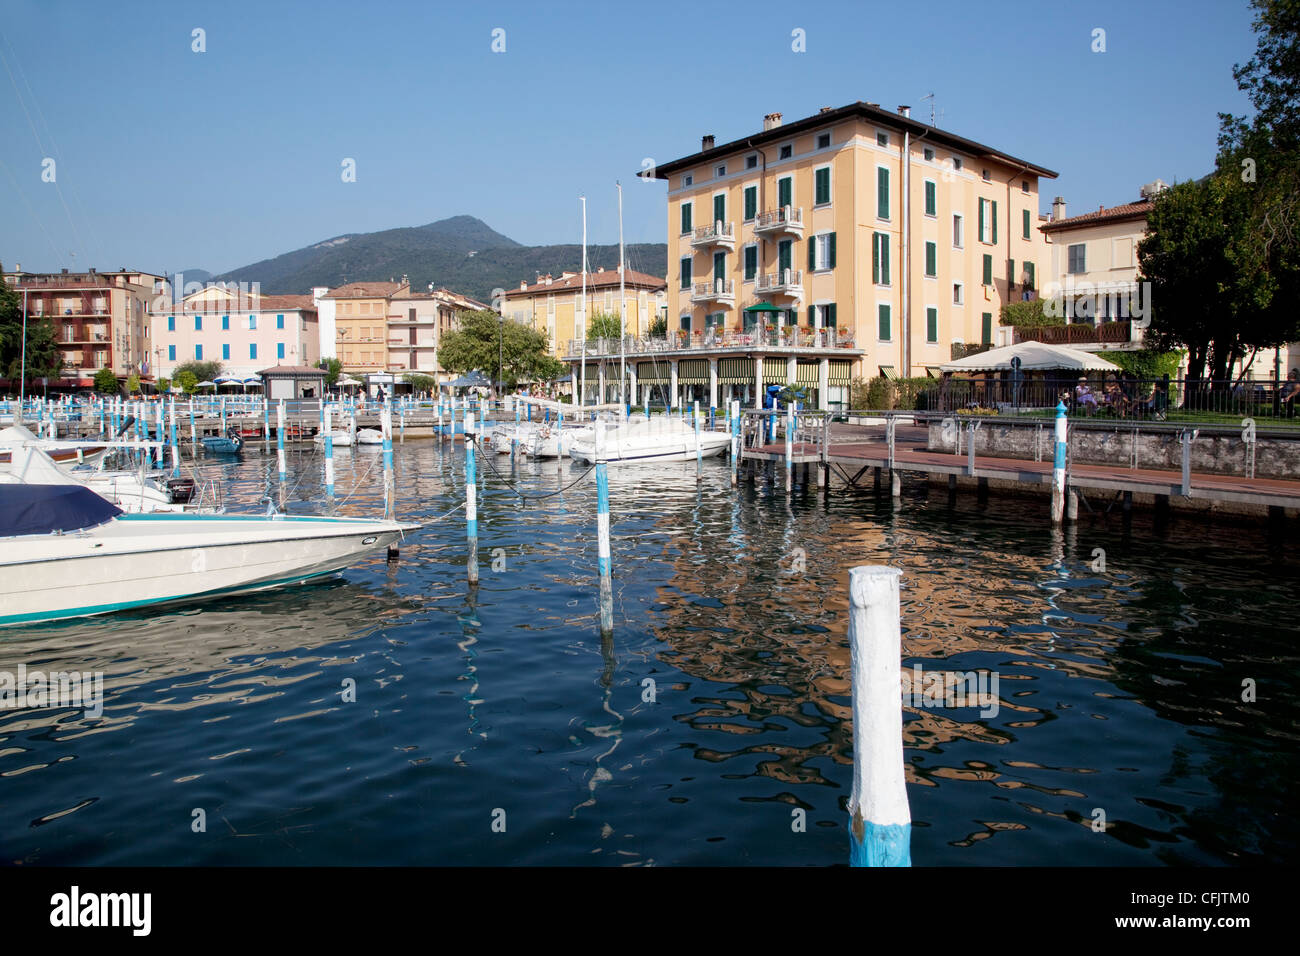 Harbour and boats, Iseo, Lake Iseo, Lombardy, Italian Lakes, Italy, Europe - Stock Image